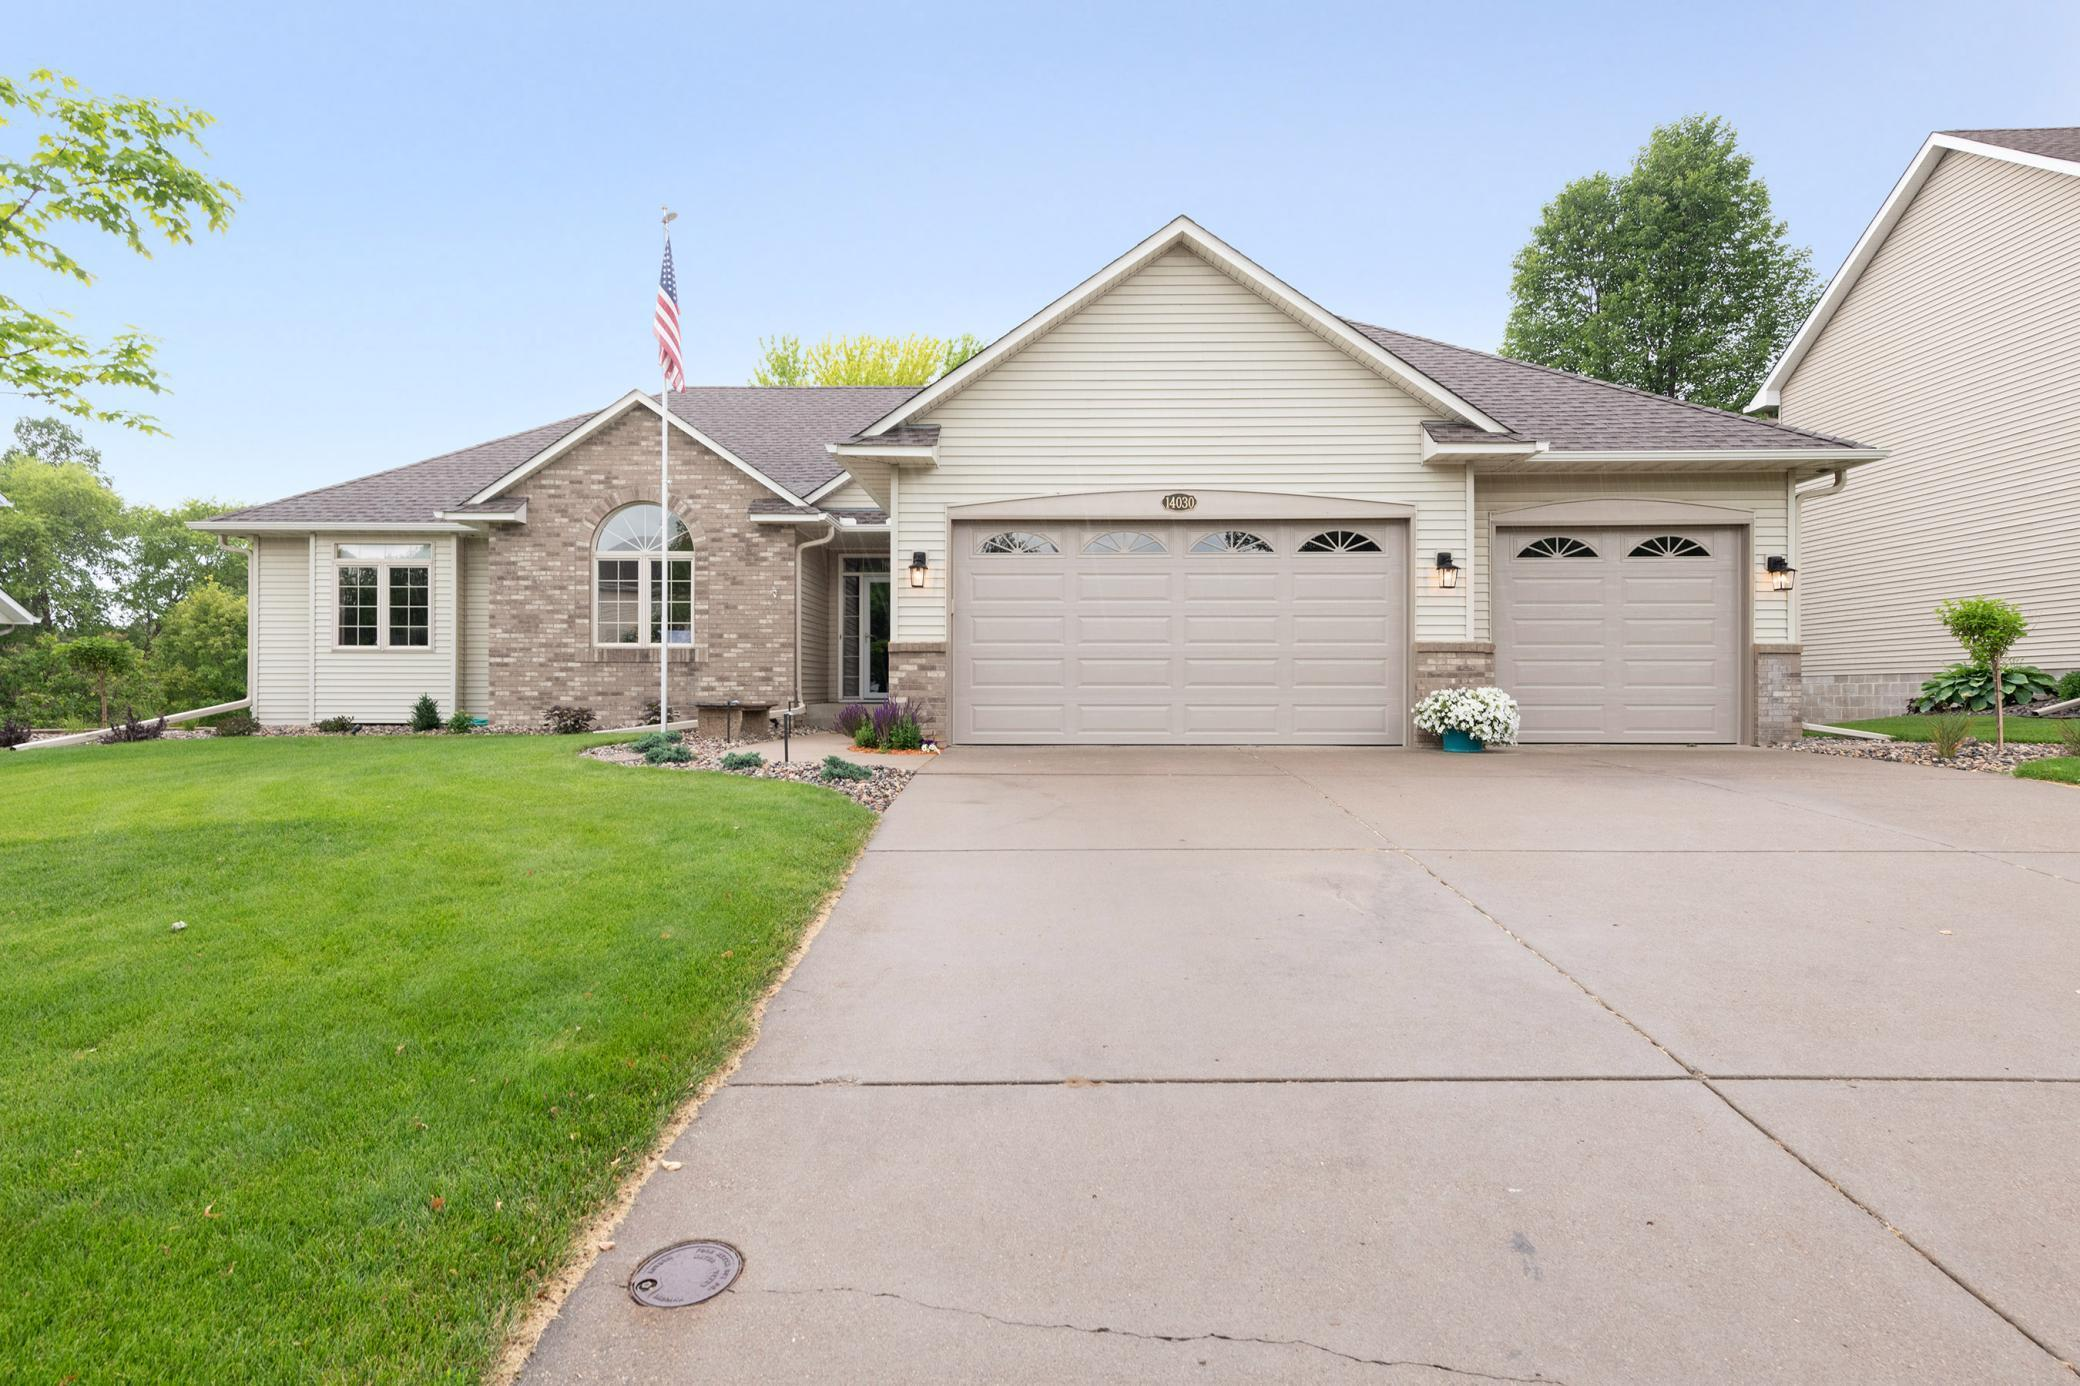 14030 Flintwood, Apple Valley, MN 55124 - Apple Valley, MN real estate listing